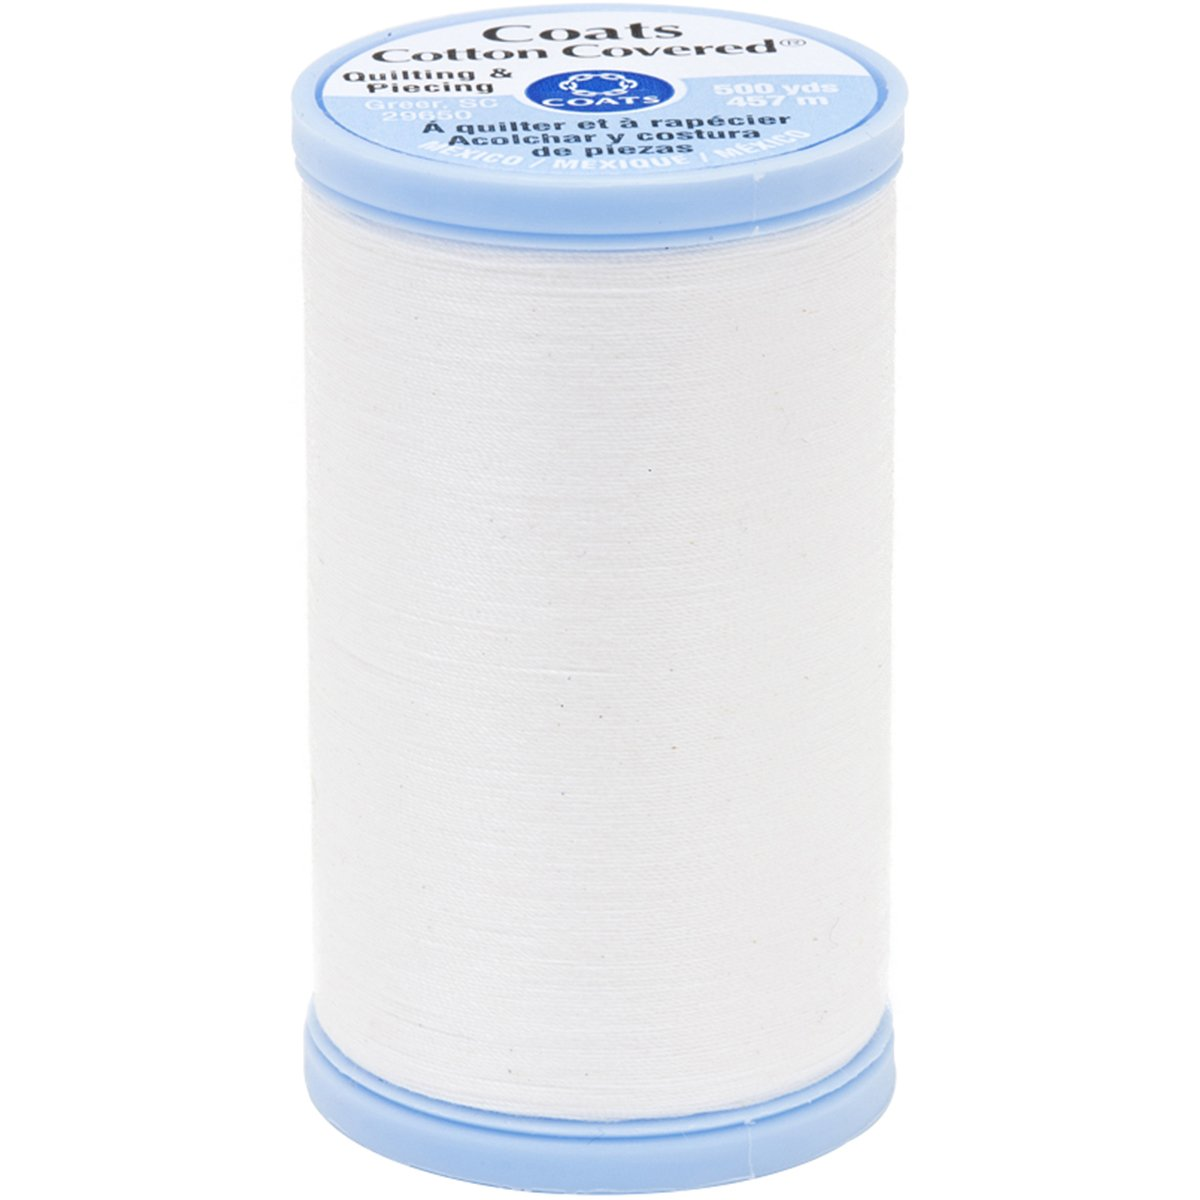 Coats Thread & Zippers Coats Cotton Covered Quilting and Piecing Thread, 500-Yard, White S926-0100